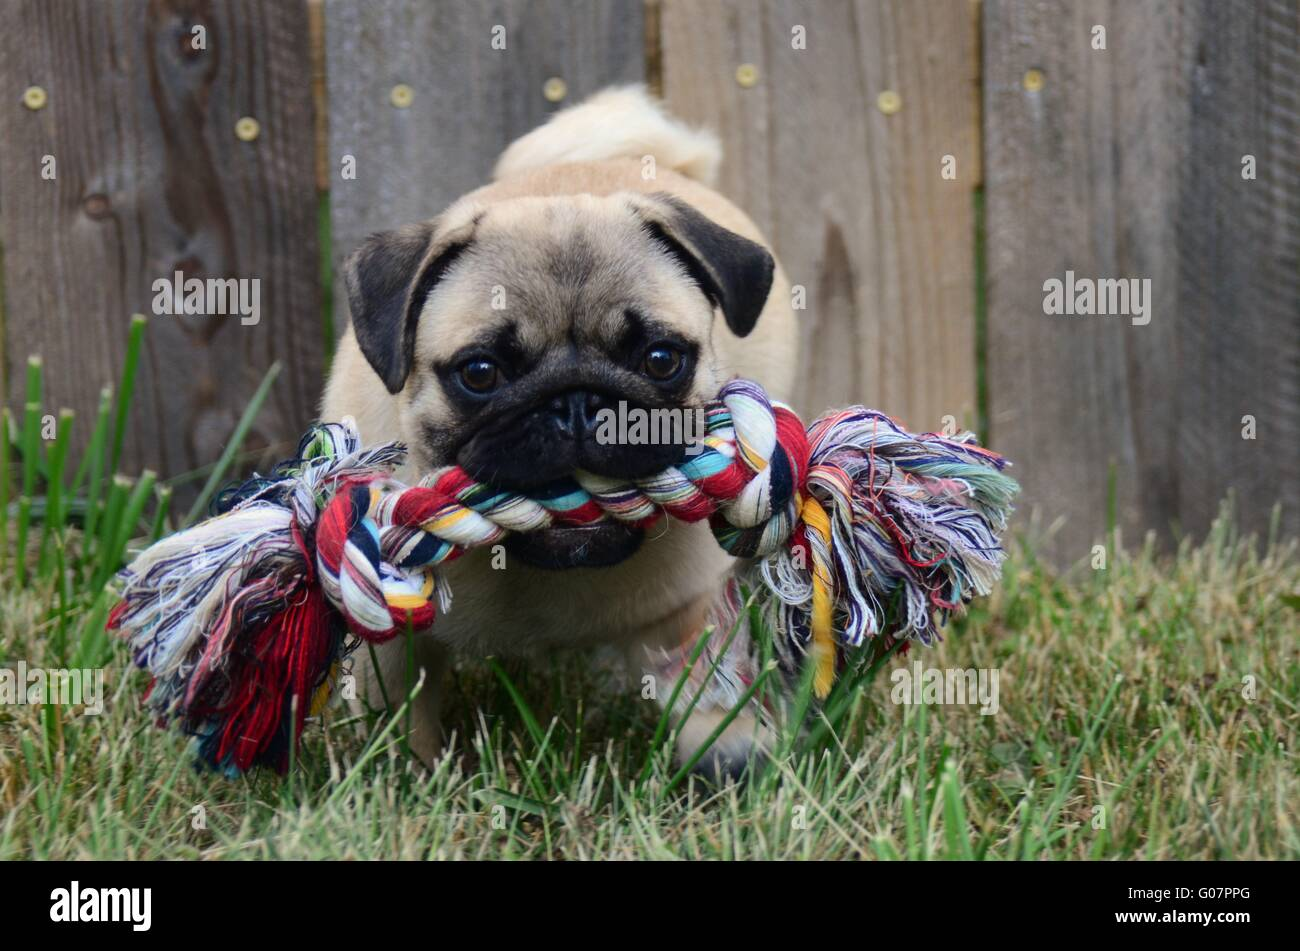 pug playing in the grass with a chew toy - Stock Image